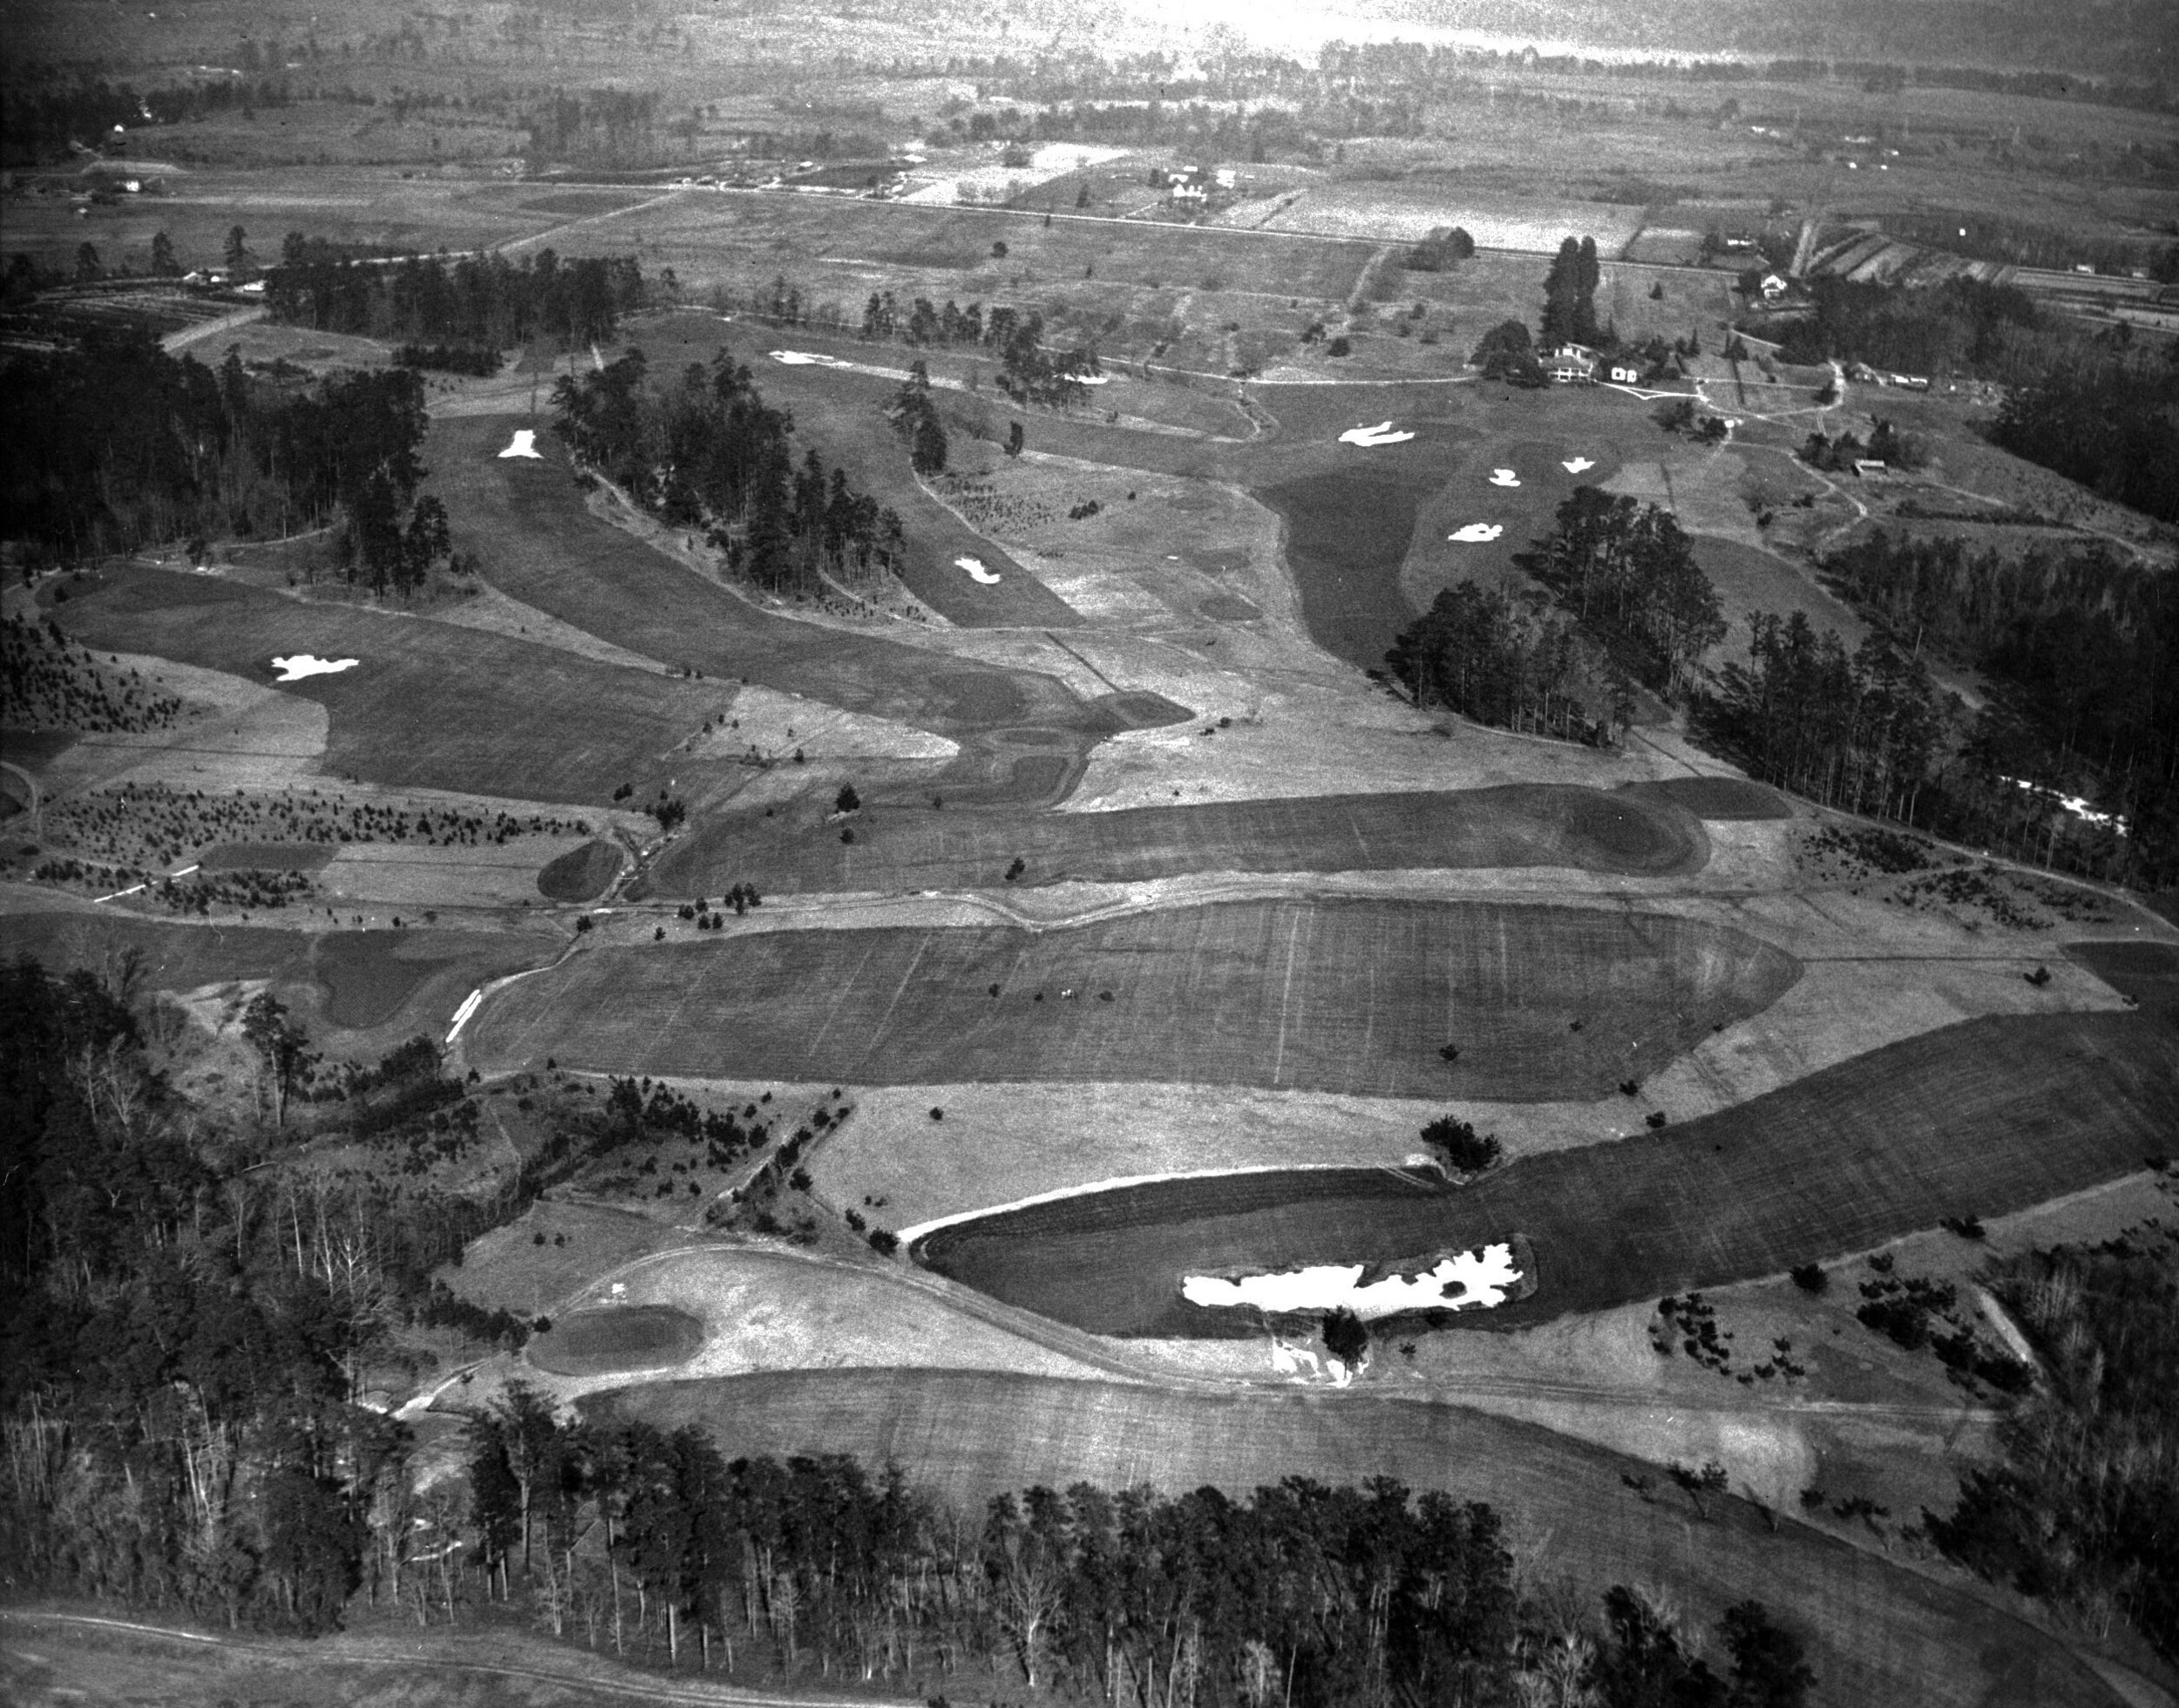 Alister MacKenzie's original design for Augusta National featured only 22 bunkers.